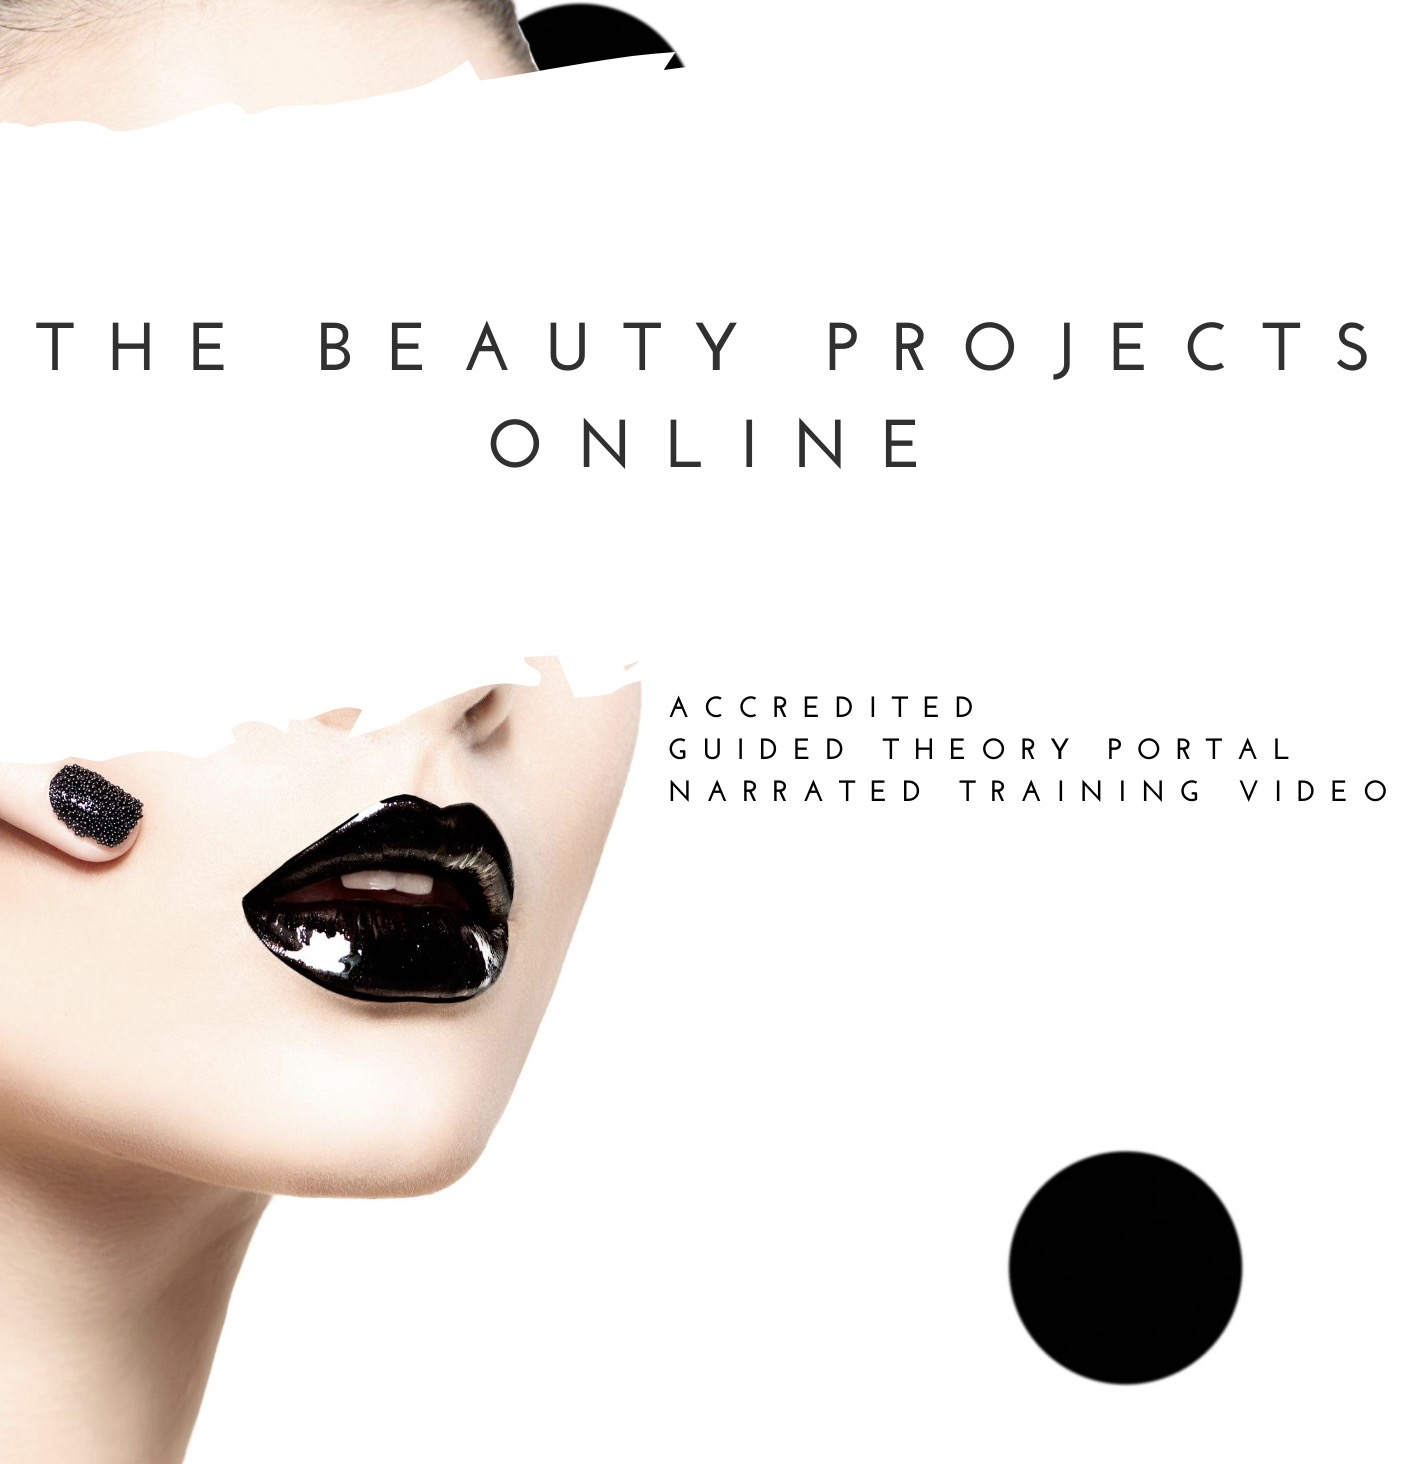 The Beauty Projects Online